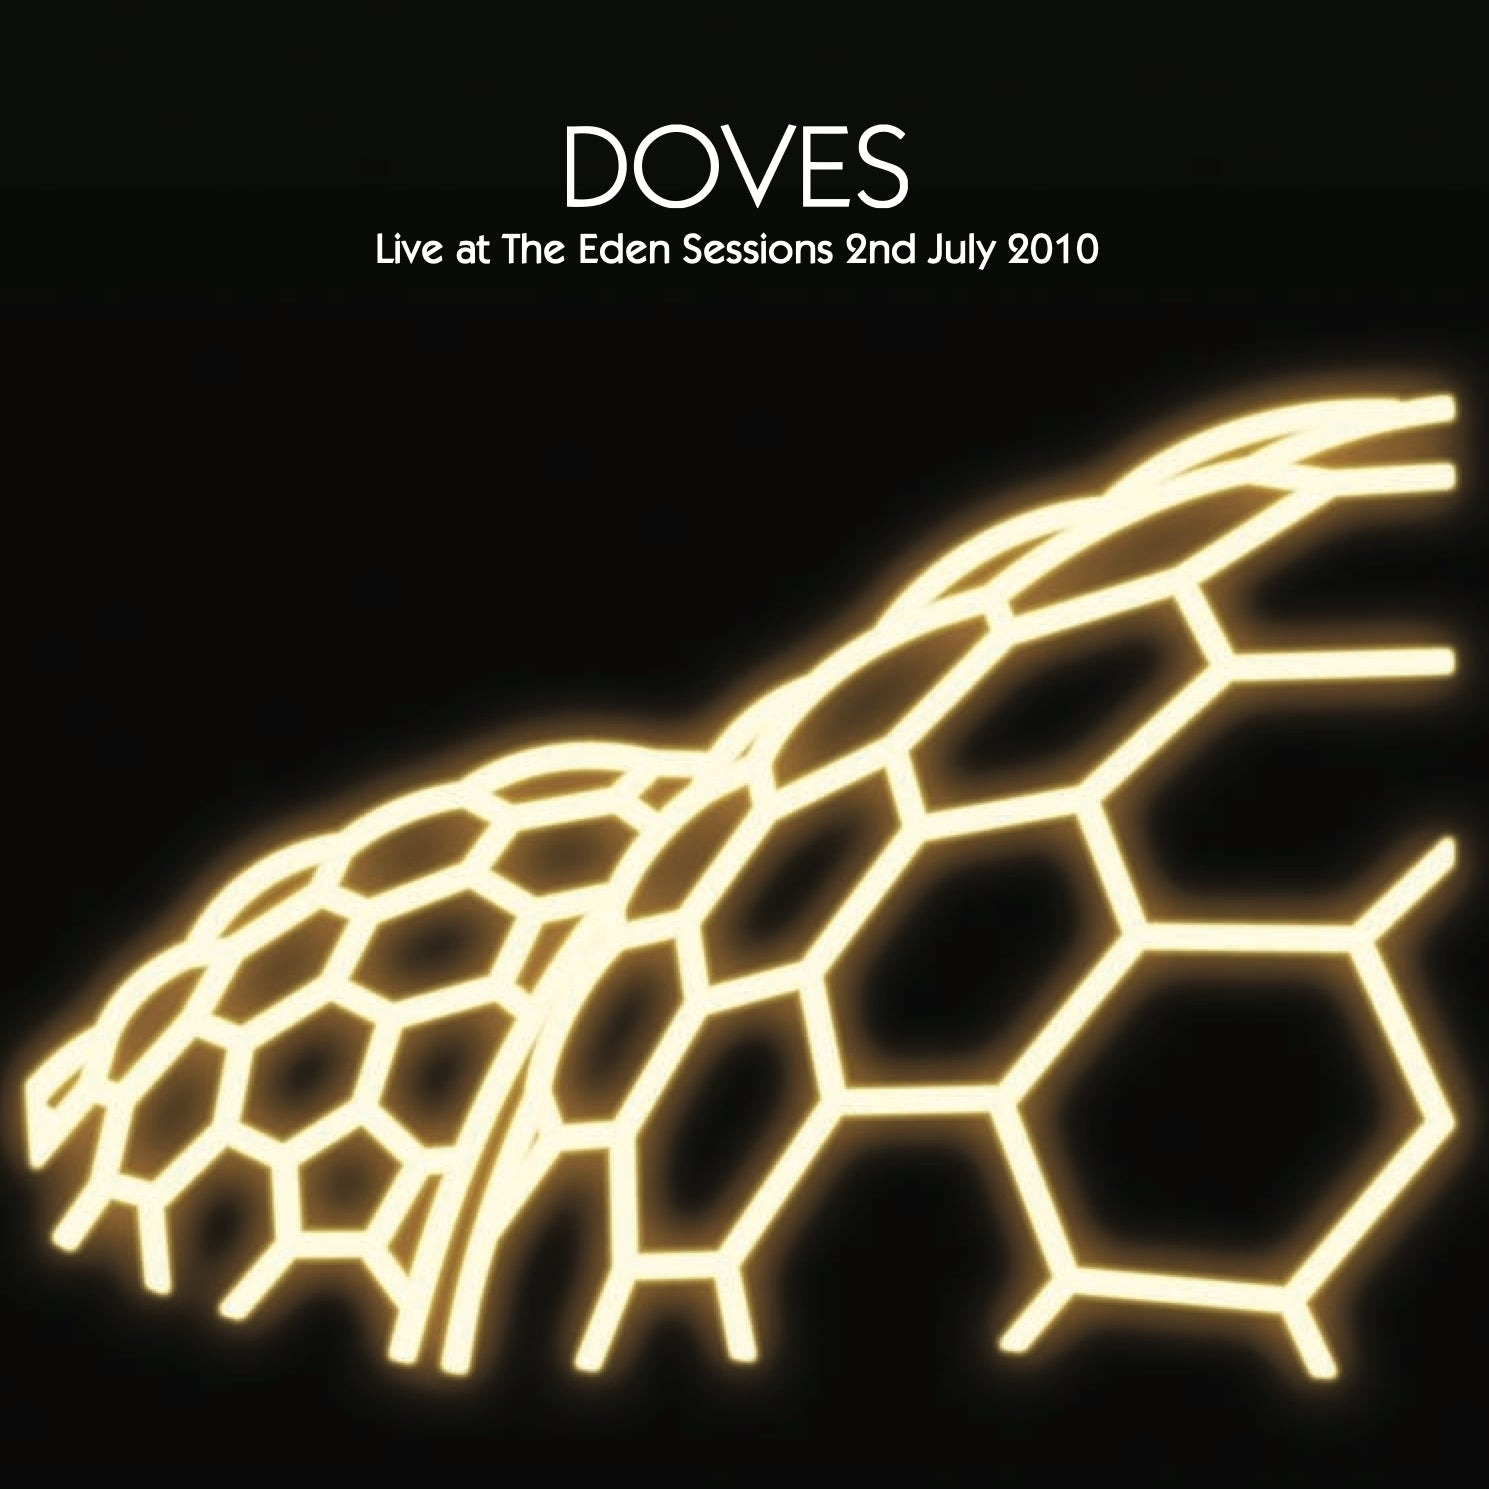 Doves - Live At The Eden Sessions 2nd July 2010